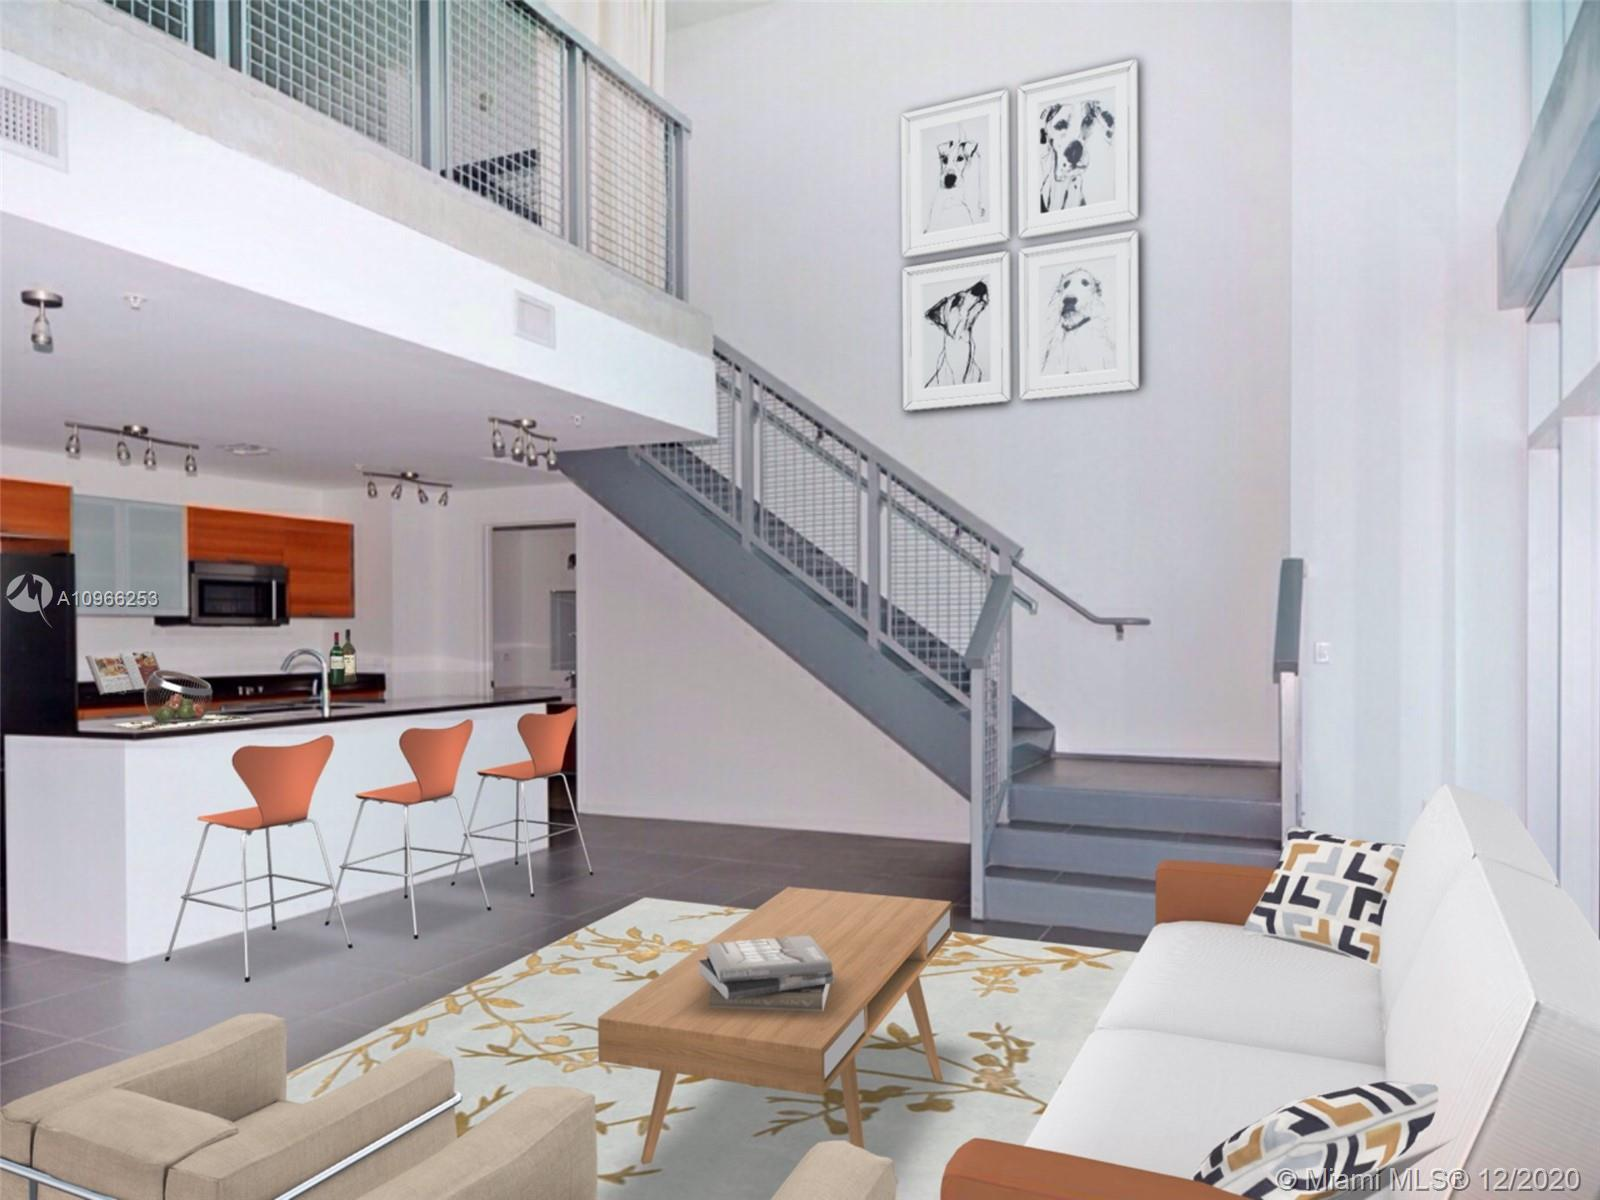 Stunning one bedroom plus den duplex loft at coveted 4Midtown with soaring 30 ft ceilings filled wit